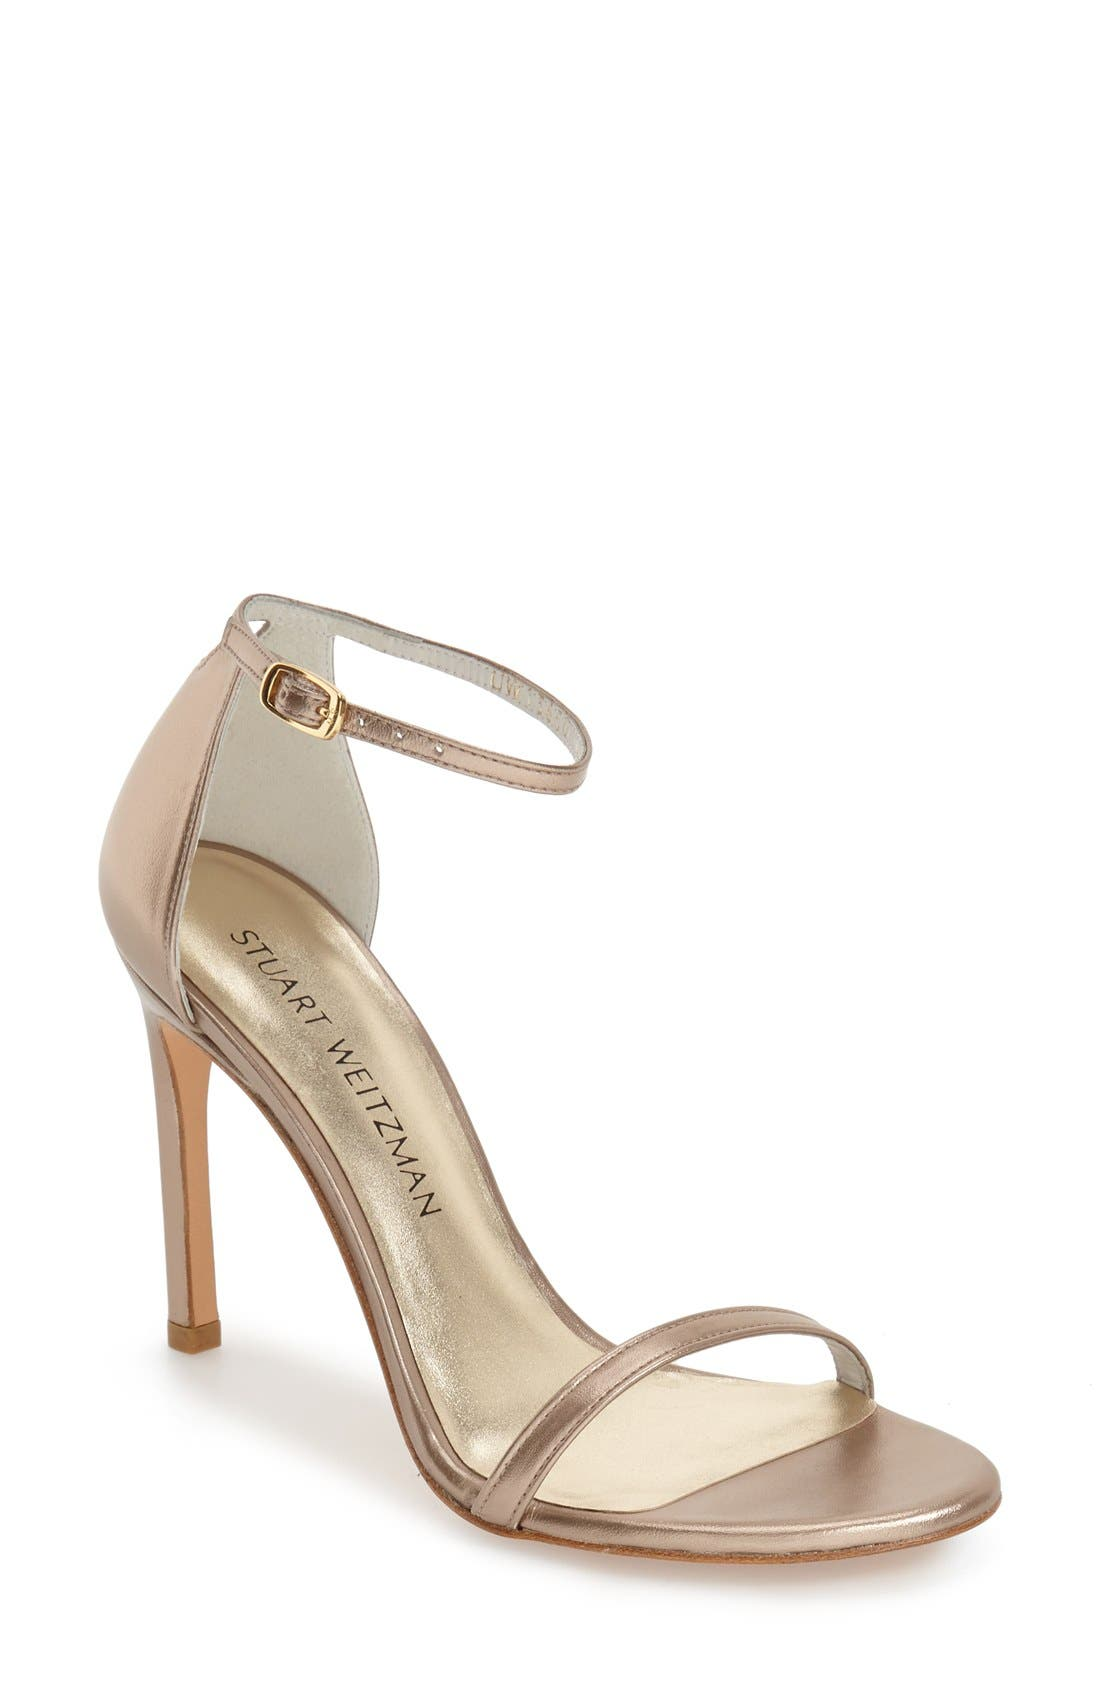 Nudistsong Ankle Strap Sandal,                             Main thumbnail 24, color,